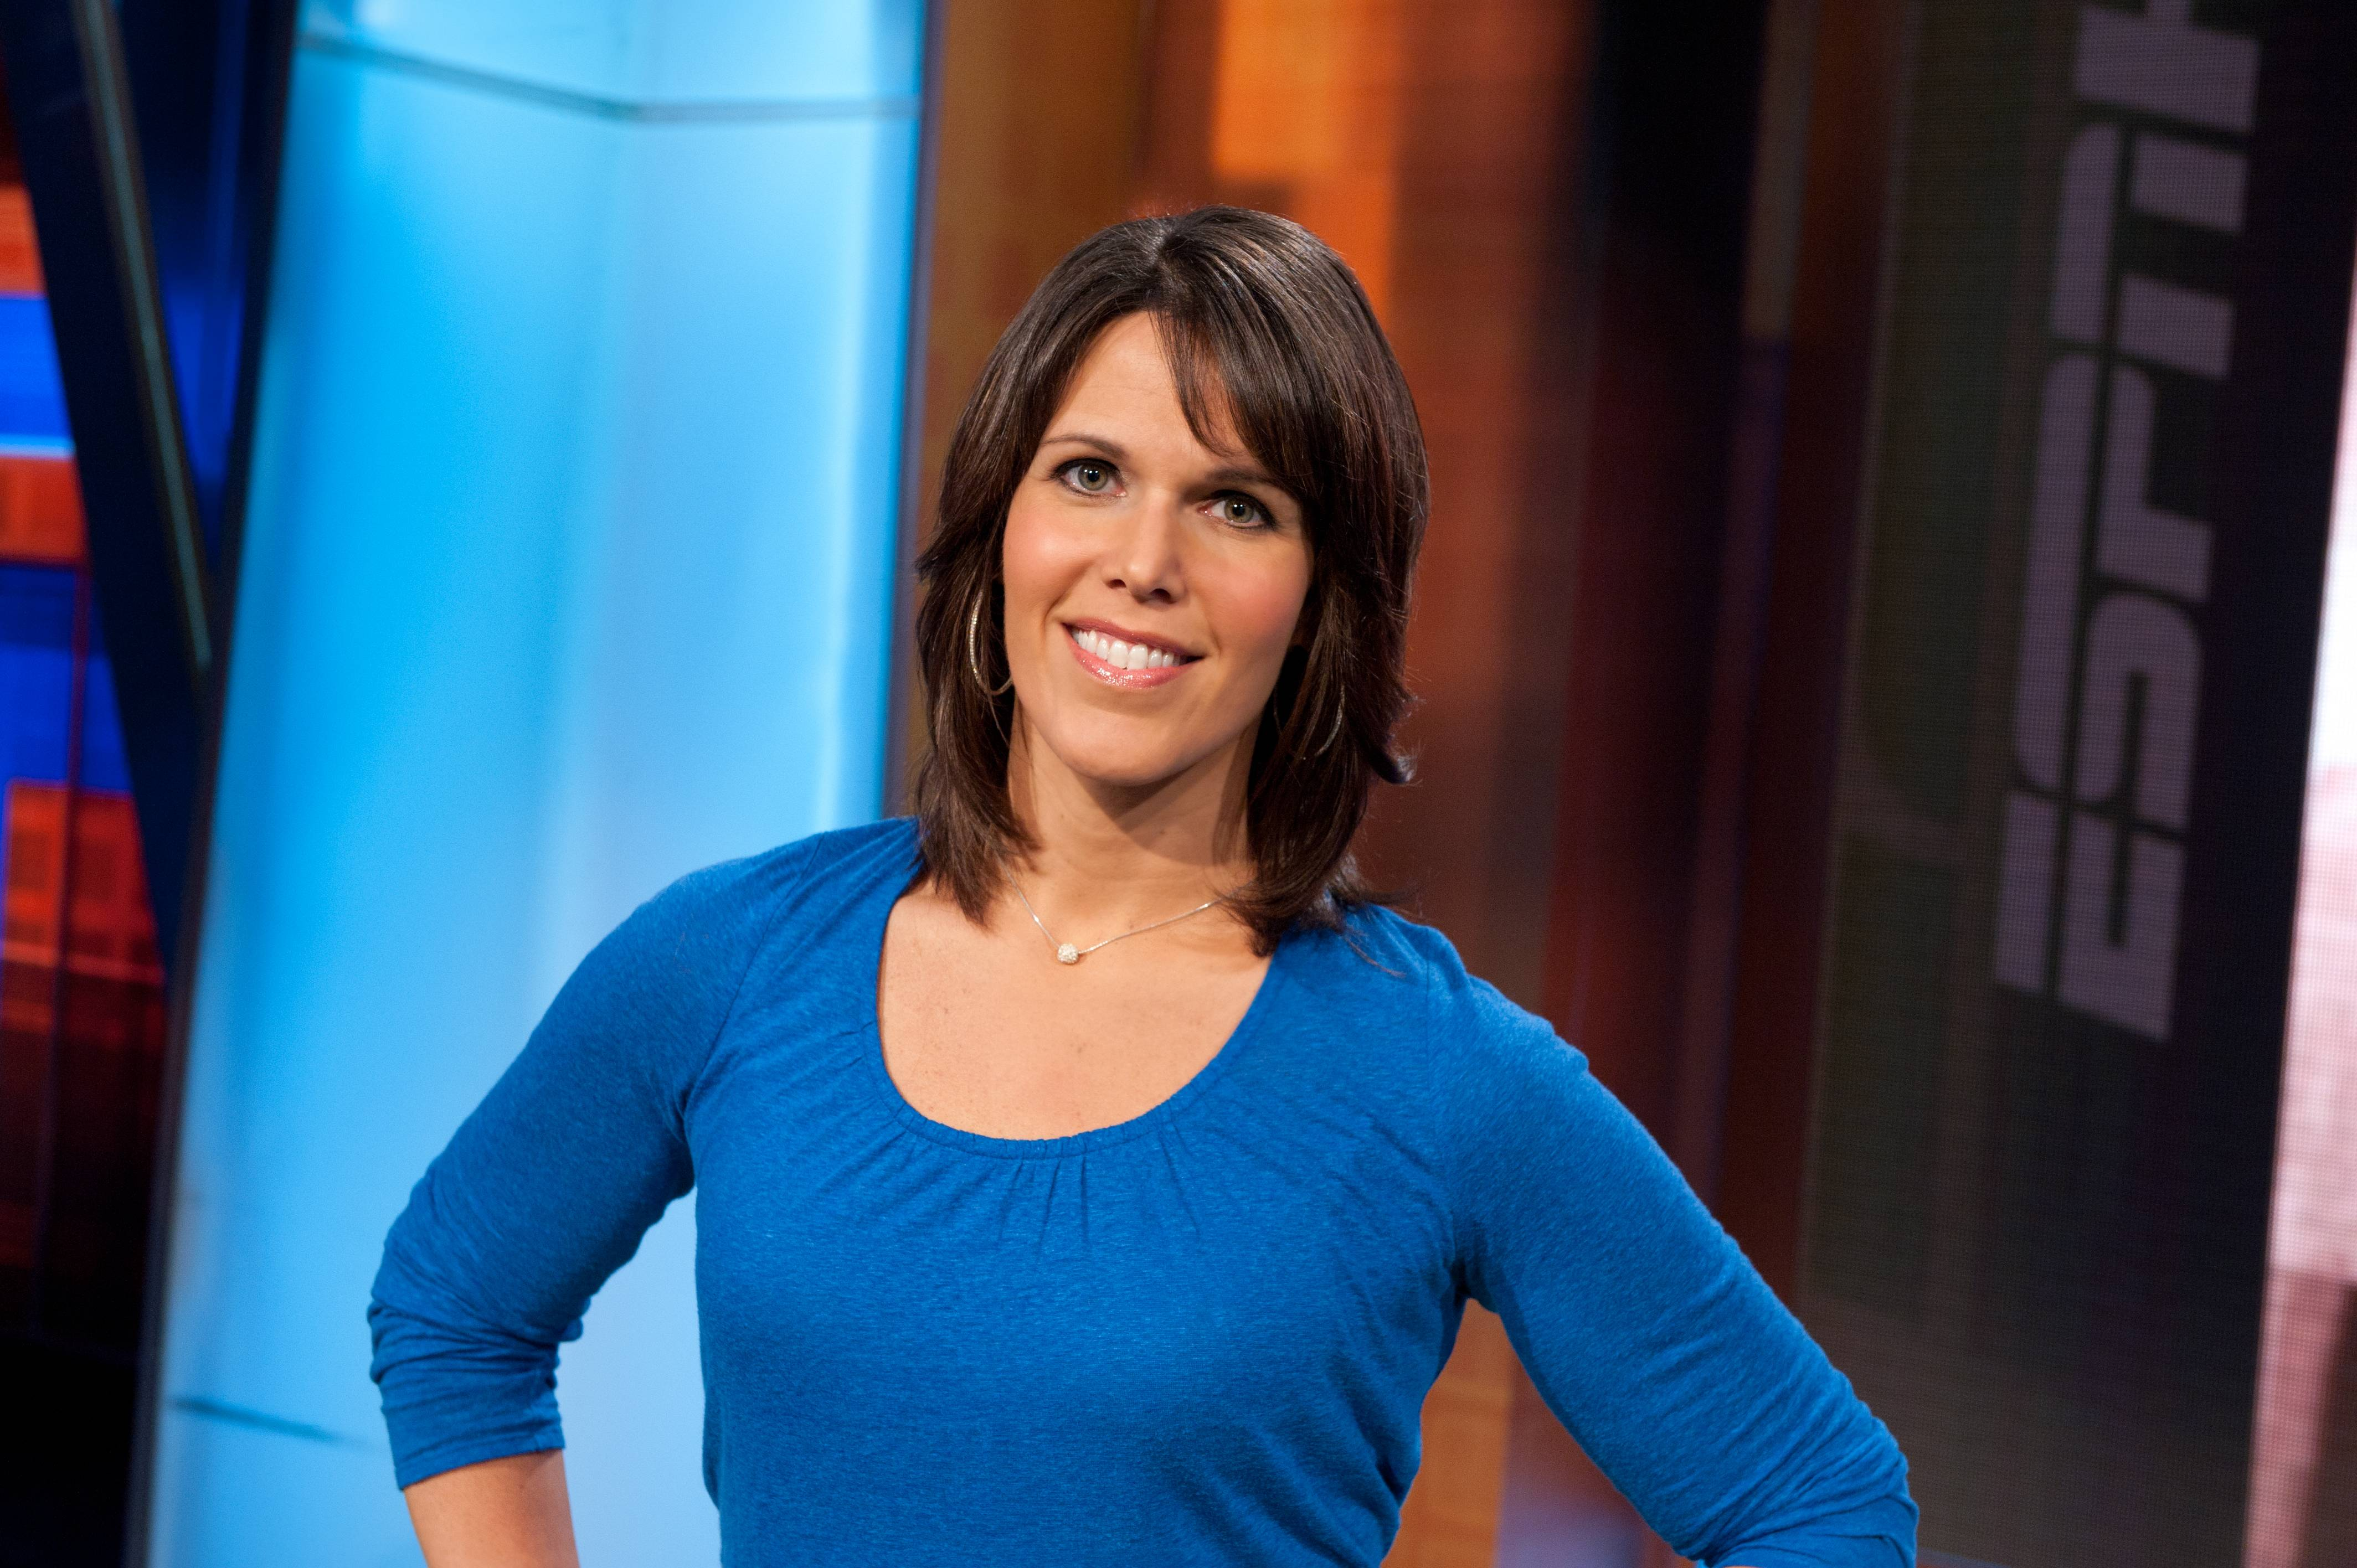 Opinion, actual, nude pictuers dana jacobson espns opinion you